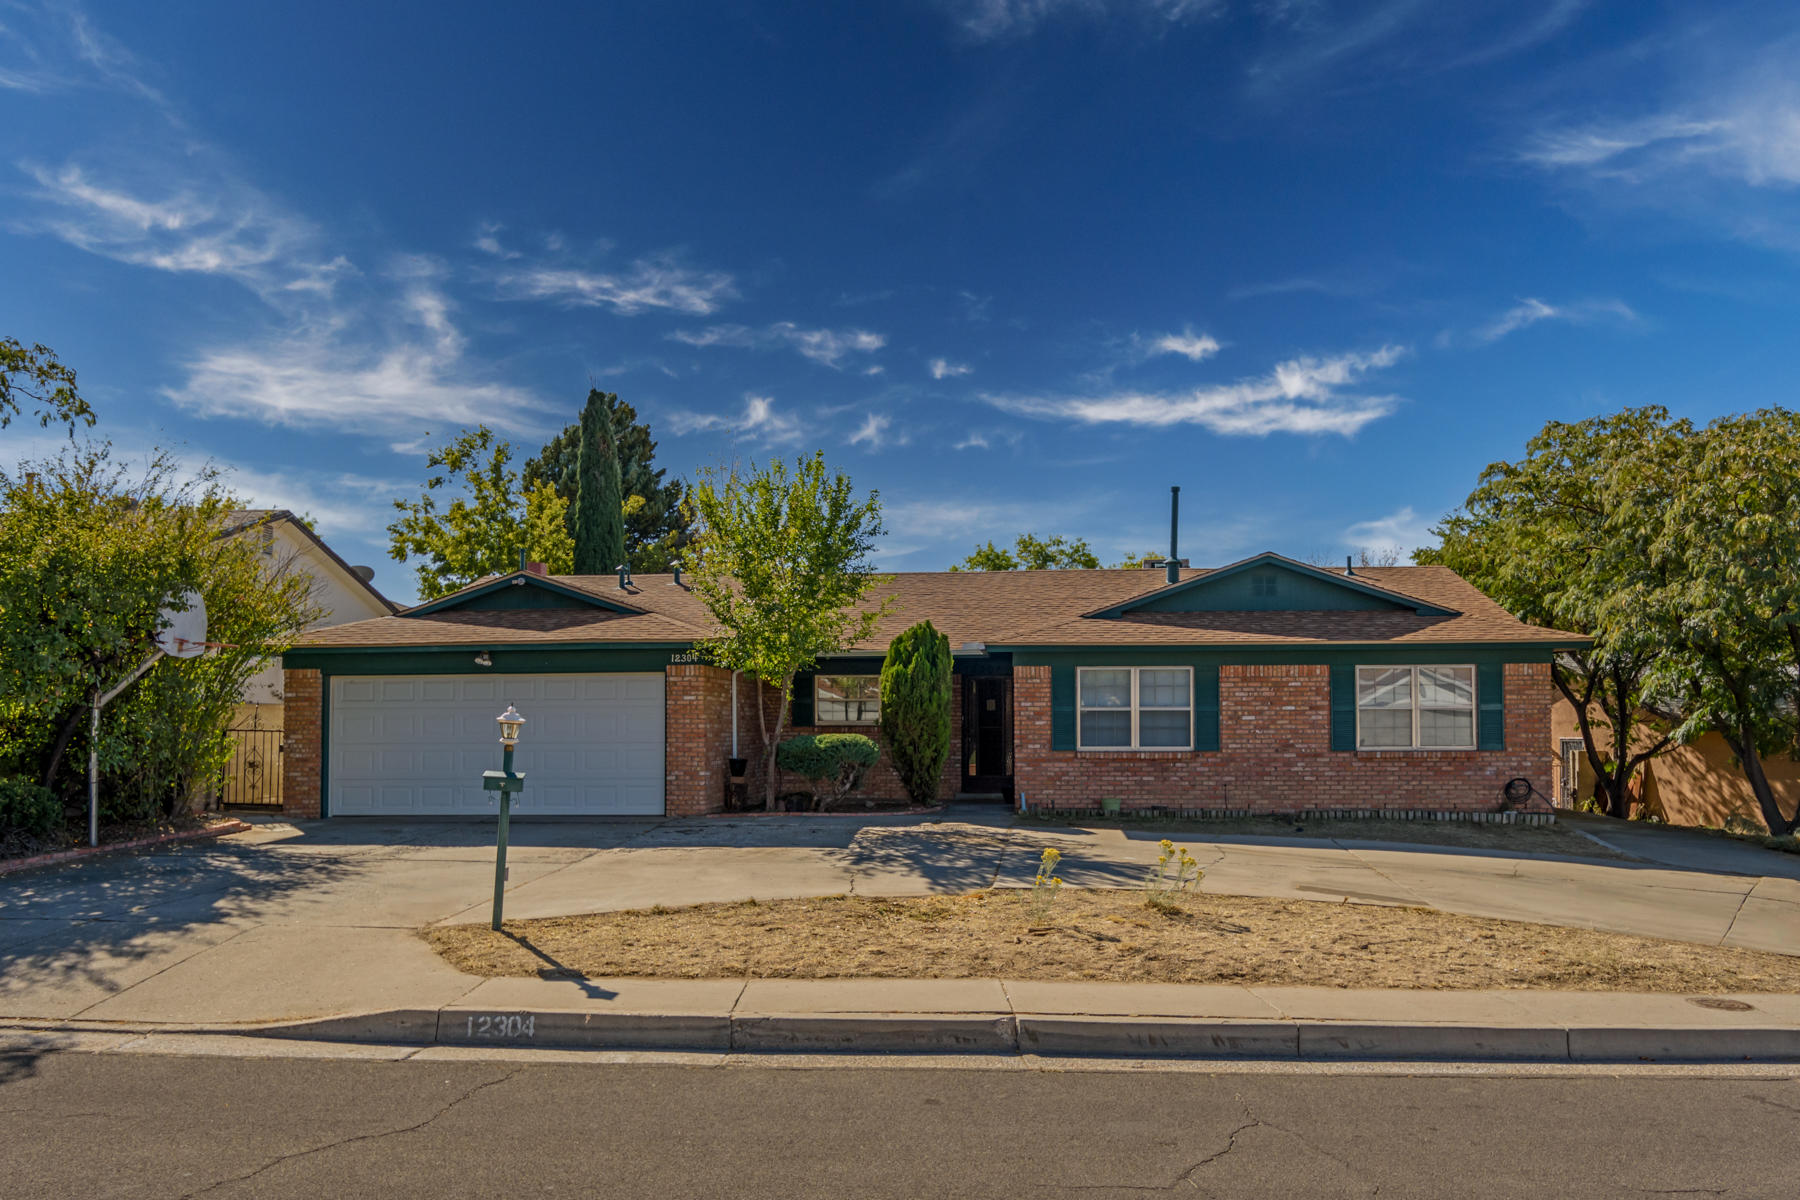 This Holiday Park beautiful brick home just got a brand new roof! It has a circle drive and an RV/boat/additional parking along the side of the home. Single story home with three bedrooms, two baths, and a two car garage. This spacious home offers a living room and also a den with fireplace. Ceiling fans in all bedrooms. Master bedroom has two closets. The backyard is a good size and has a covered patio, mature trees, and a storage shed. This is finally your opportunity to afford a great home in a great area!